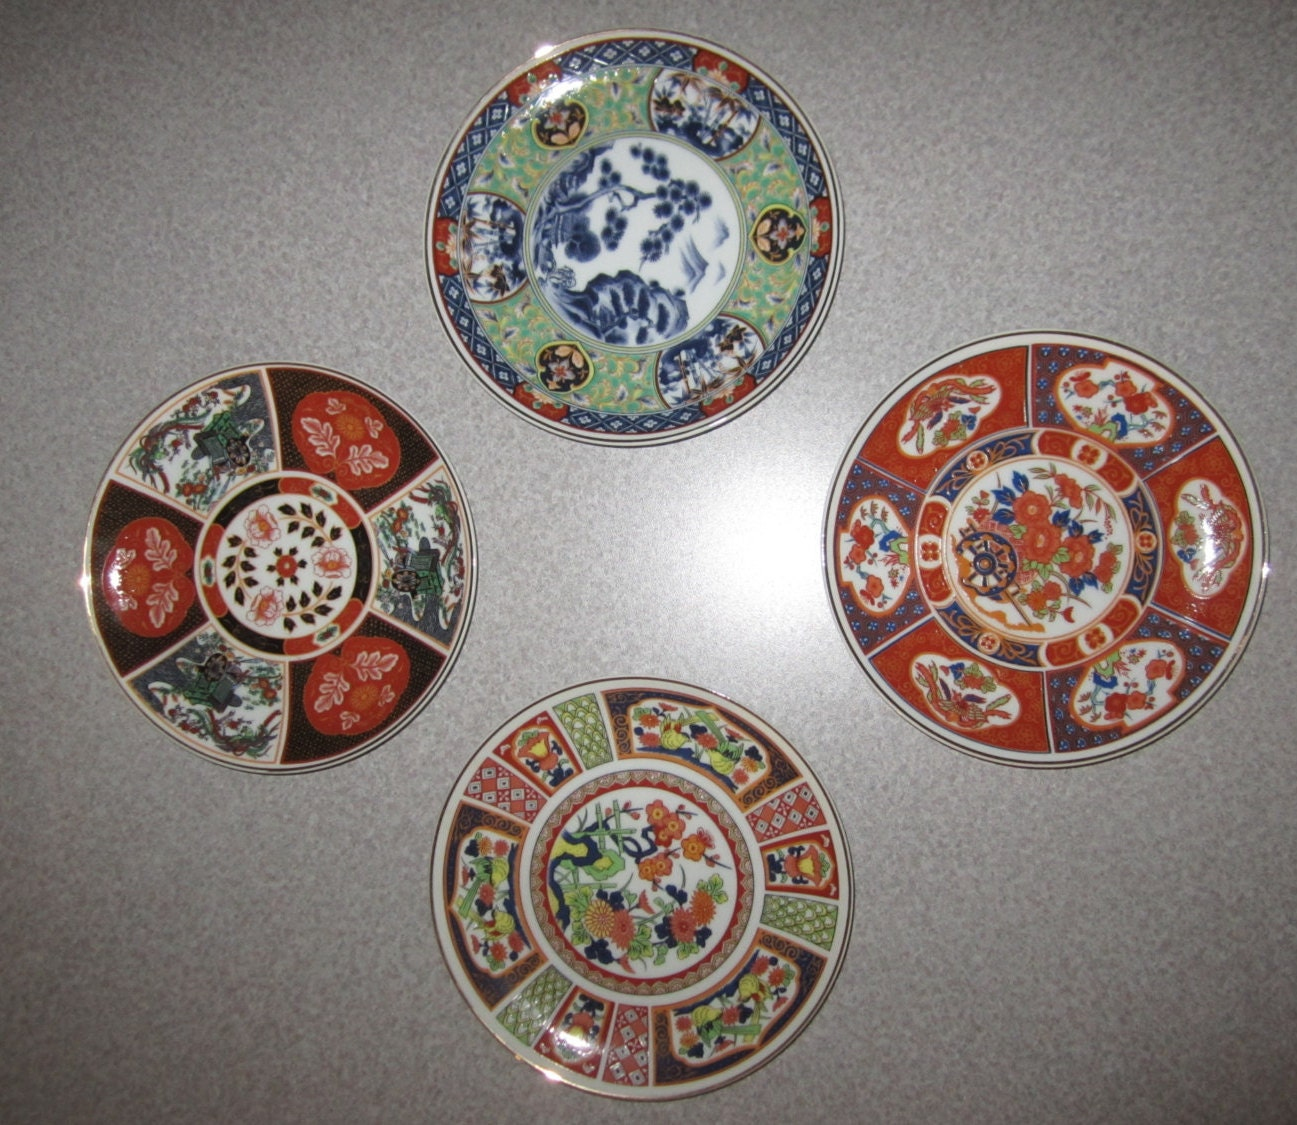 Small Decorative Plates Sets: Vintage Set Of Original 4 Imari Japanese Decorative Plates In